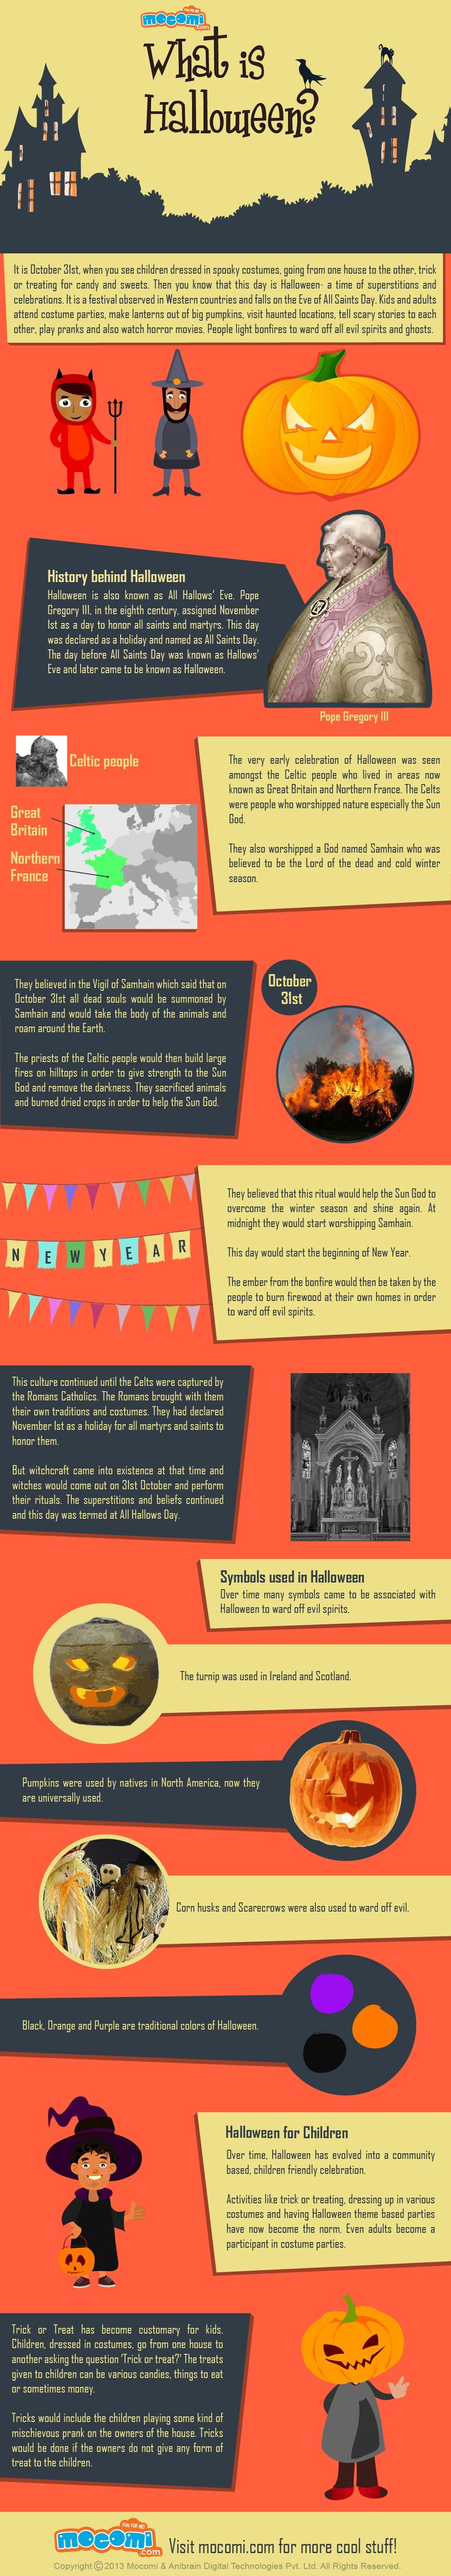 What is #Halloween? - It is a #festival observed in Western countries and falls on the Eve of All Saints Day. Kids and adults attend costume parties, make lanterns out of big #pumpkins, visit haunted locations, tell scary stories to each other, play pranks and also watch horror movies.